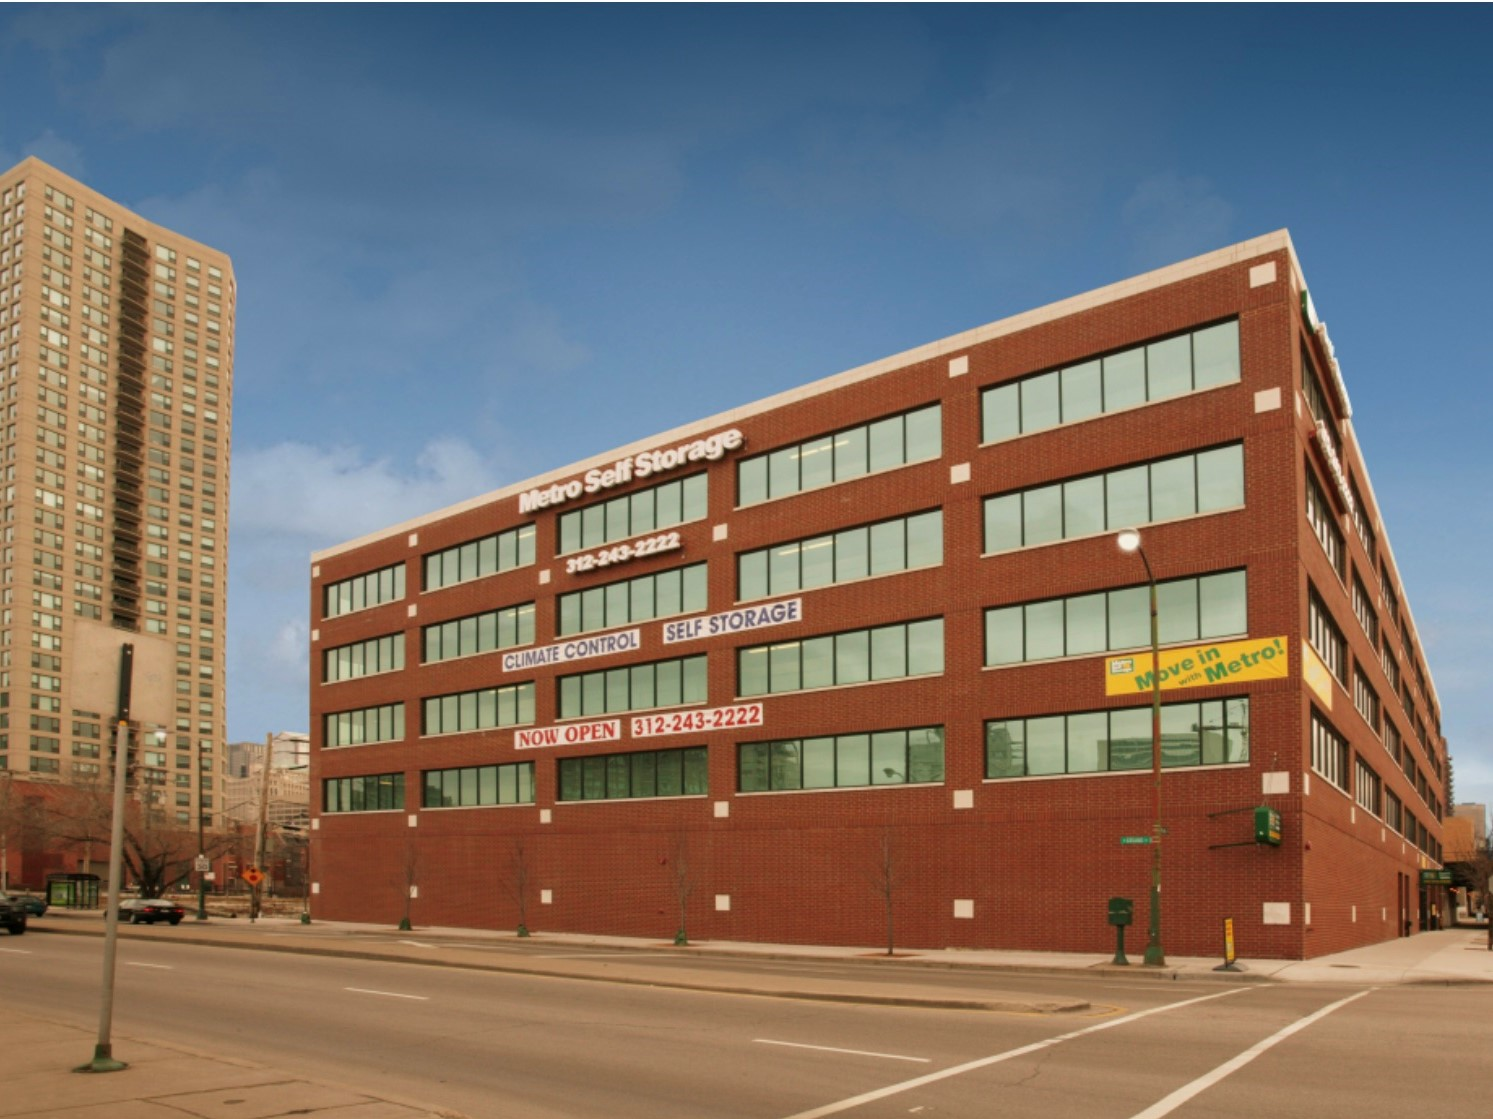 One of Metro's self storage properties in Chicago. Image courtesy of Talonvest Capital Inc.